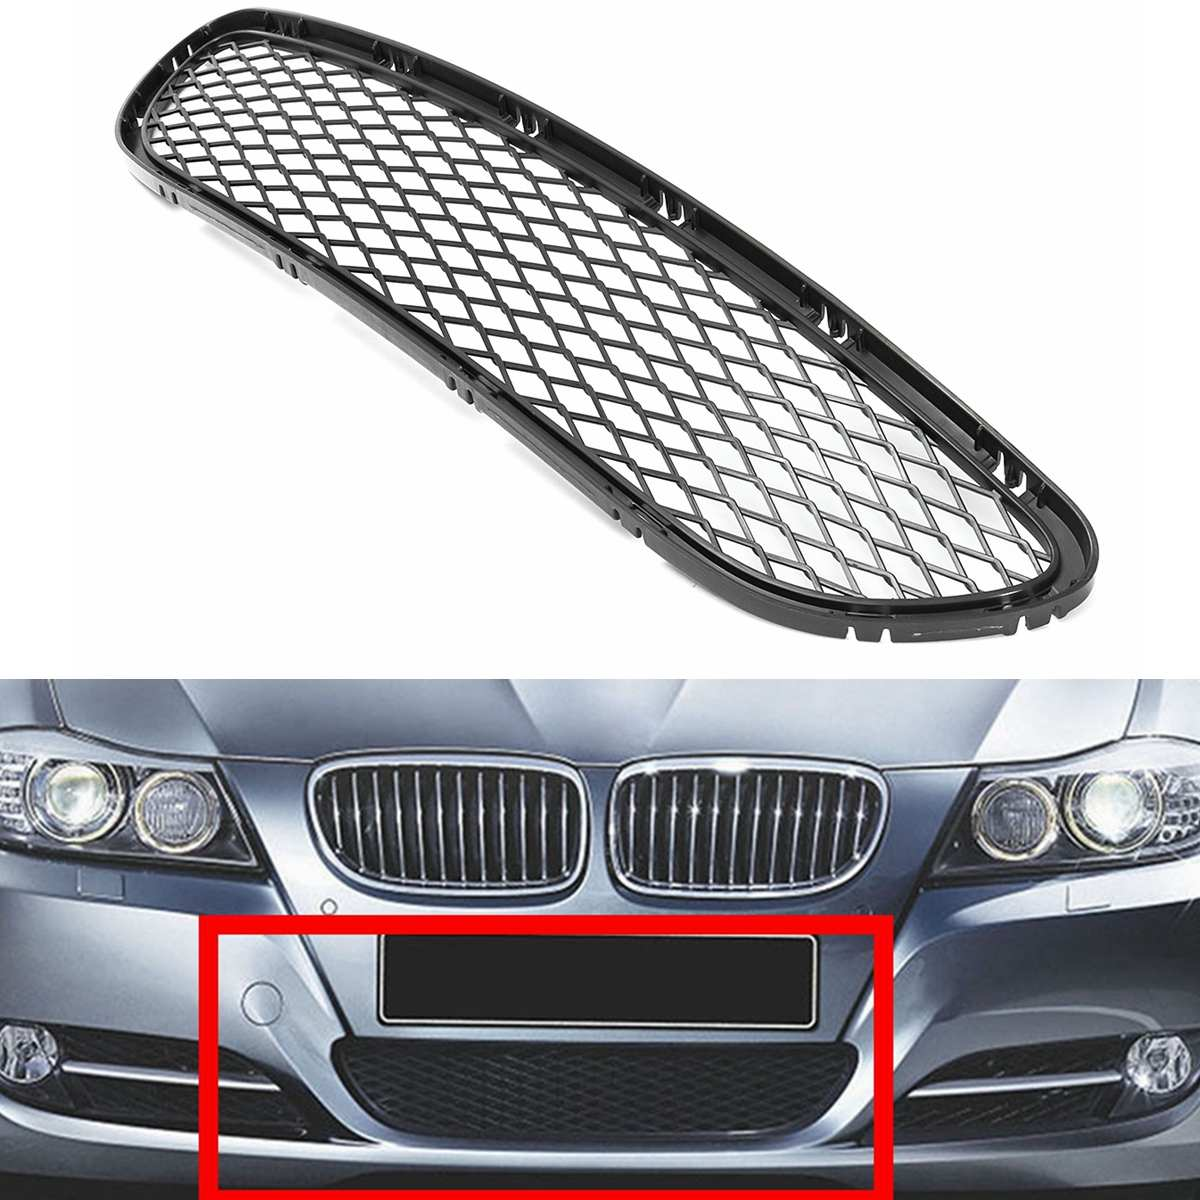 Front Bumper Lower Grill Fits BMW 3-Series E90 91 2009-2010